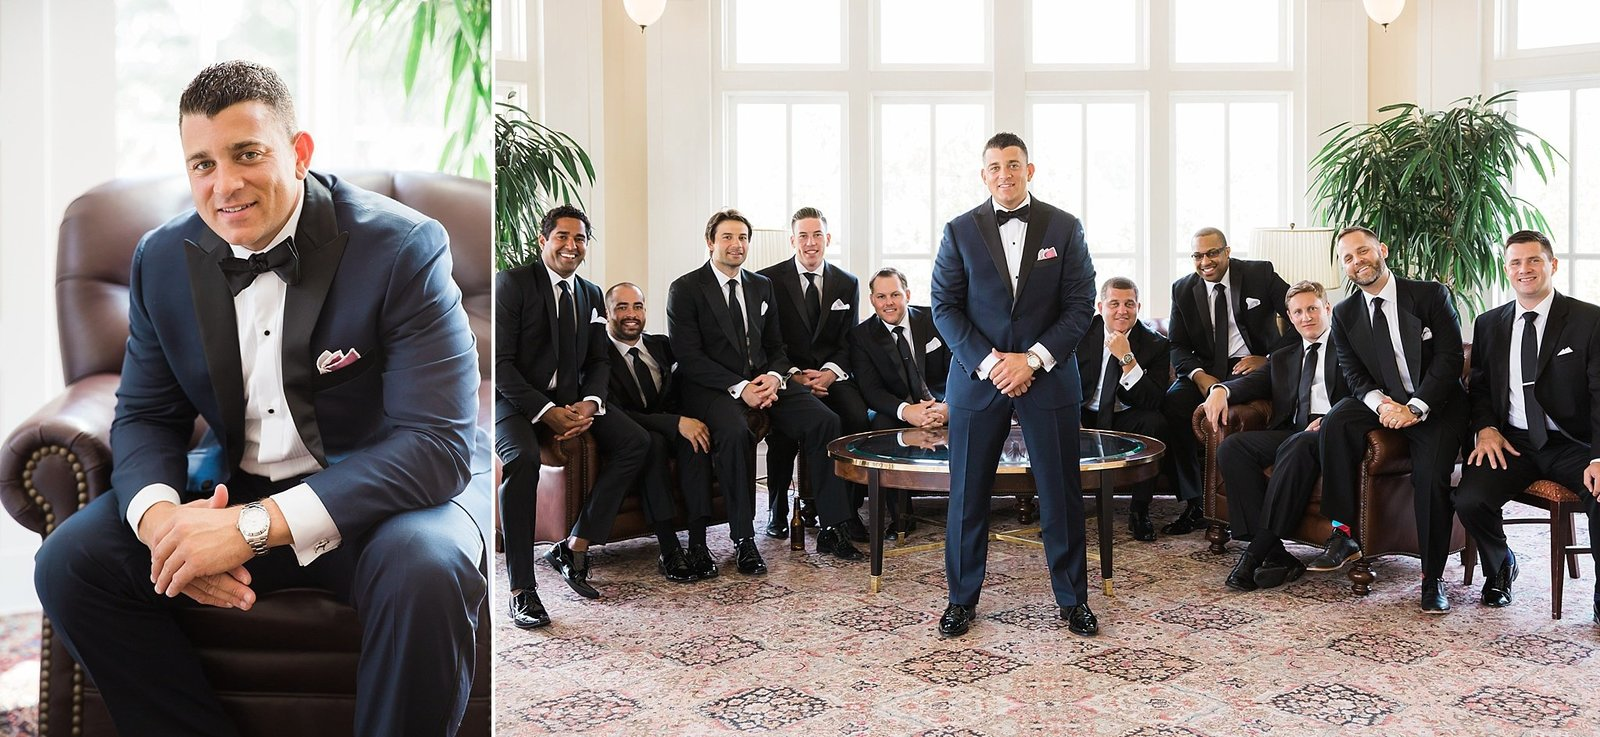 M Harris Studios_Trump National Golf Club Wedding_classic groom portraits in tux